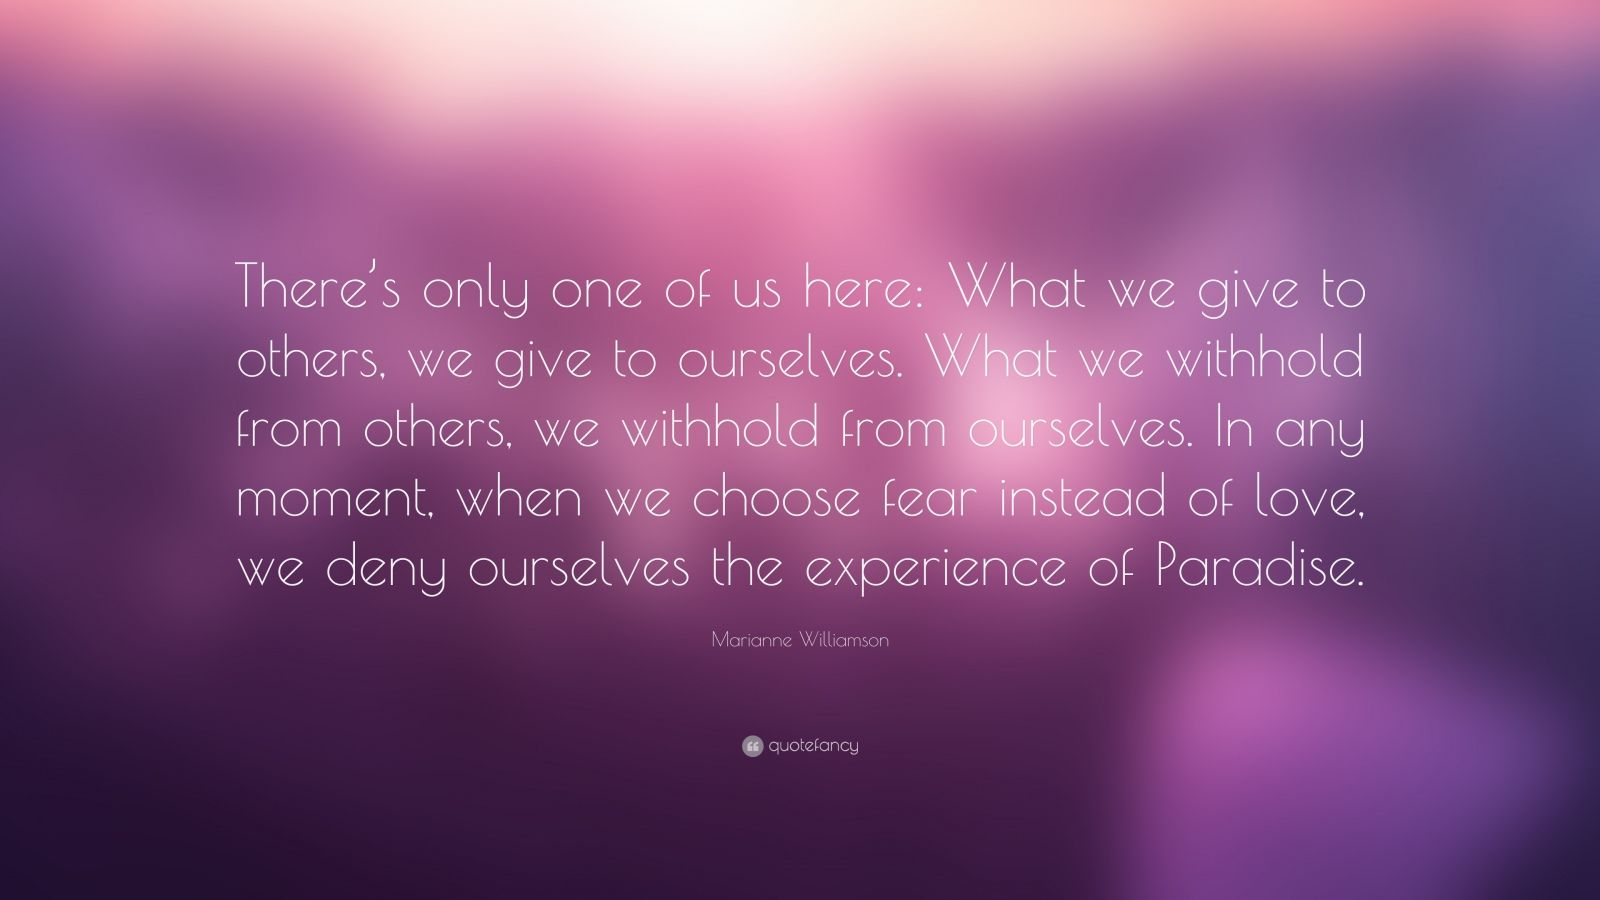 "Marianne Williamson Quote: ""There's only one of us here: What we give to others, we give to ourselves. What we withhold from others, we withhold from ourselves. In any moment, when we choose fear instead of love, we deny ourselves the experience of Paradise."""